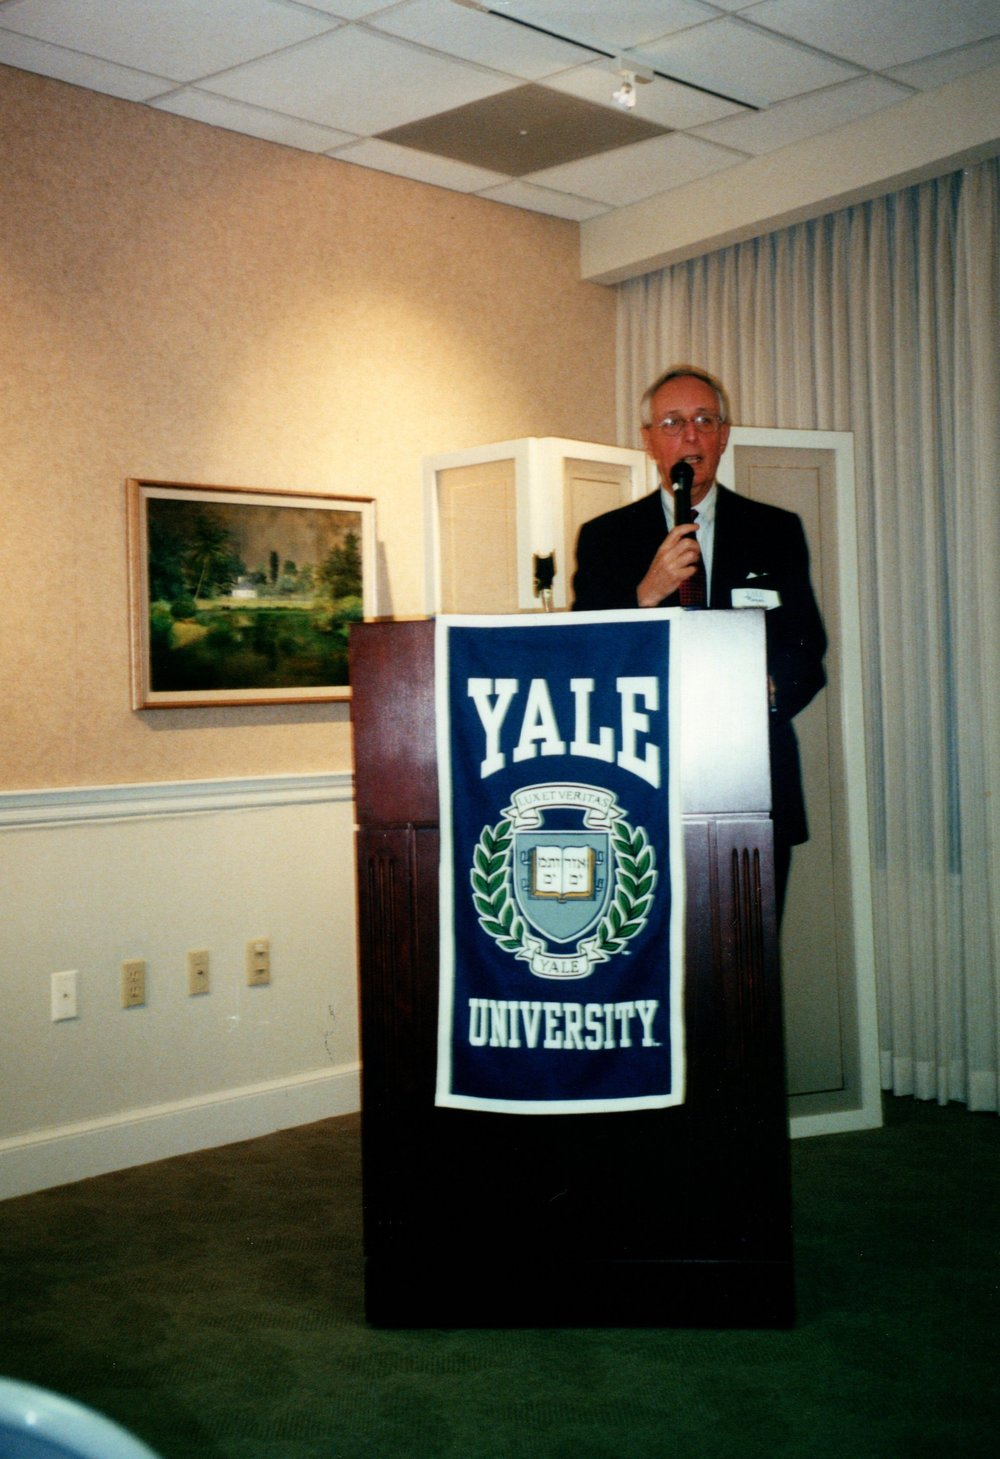 1_15_2001 - 2ND TERCENTENNIAL SPEAKER TRIBUTE PROGRAM HOSTED BY NORTHERN TRUST CO. 13.jpg